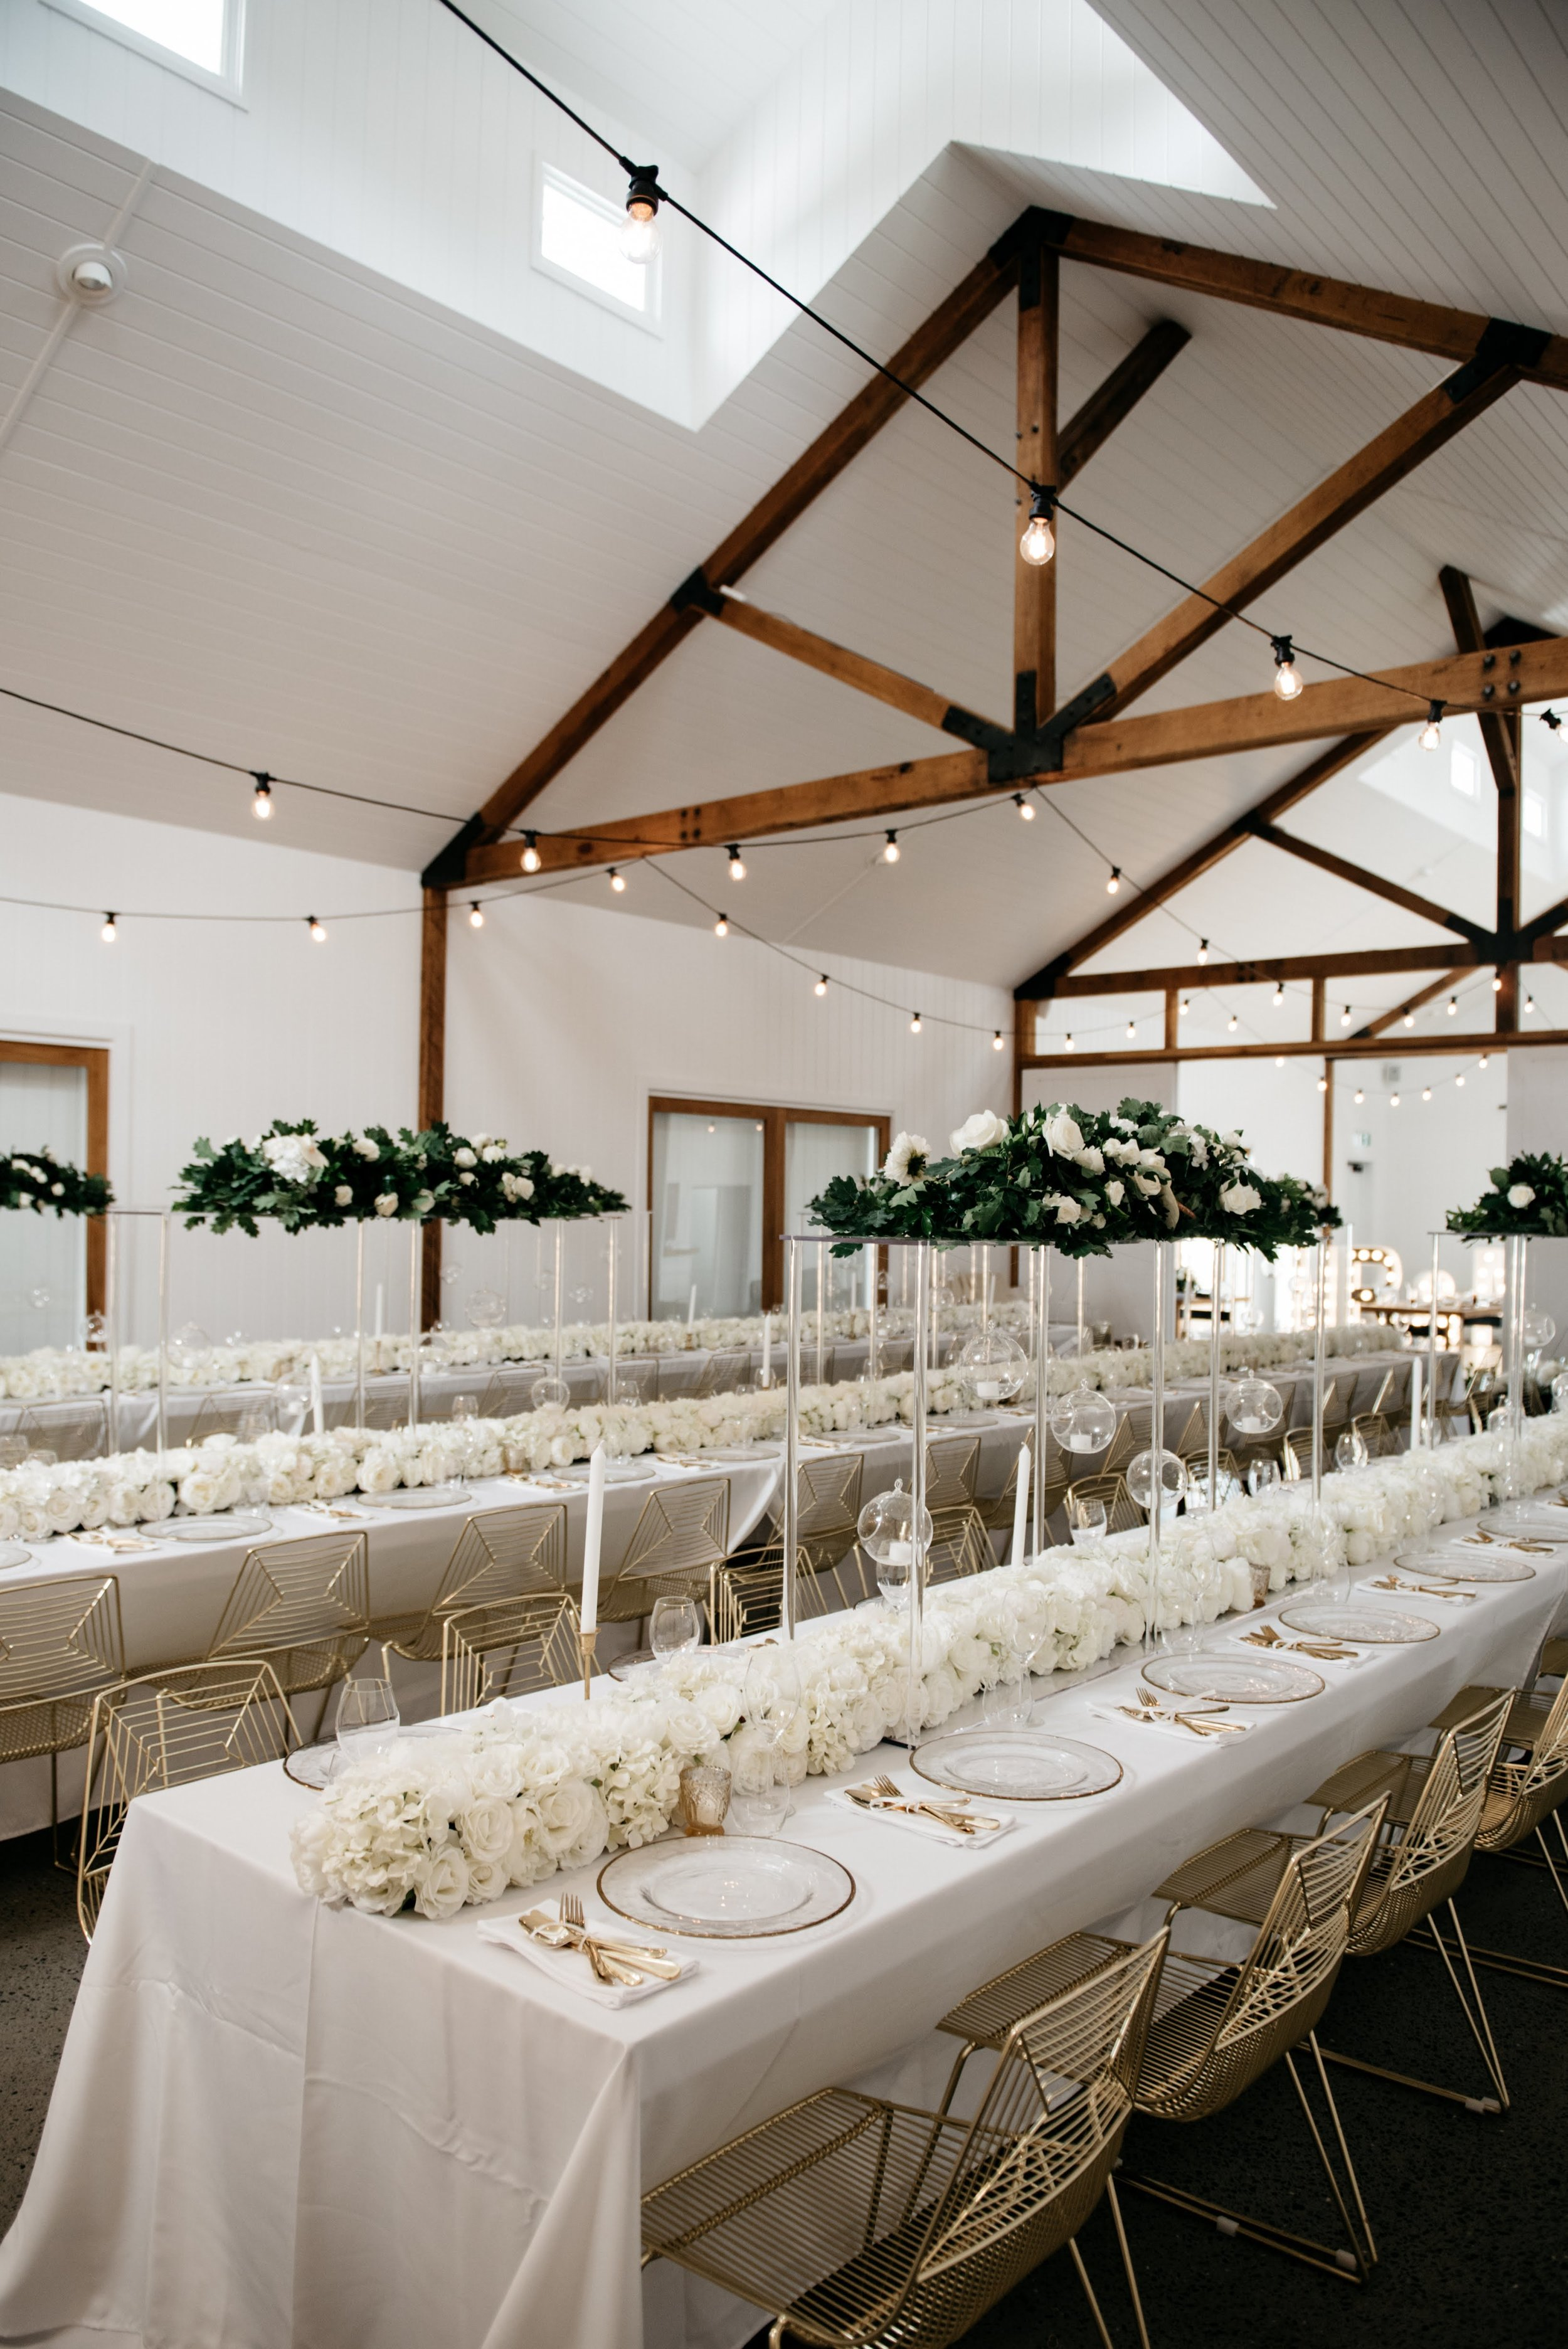 Real Wedding at Summergrove Estate Barn, Hampton Event Hire Blog, Dining Chair Hire